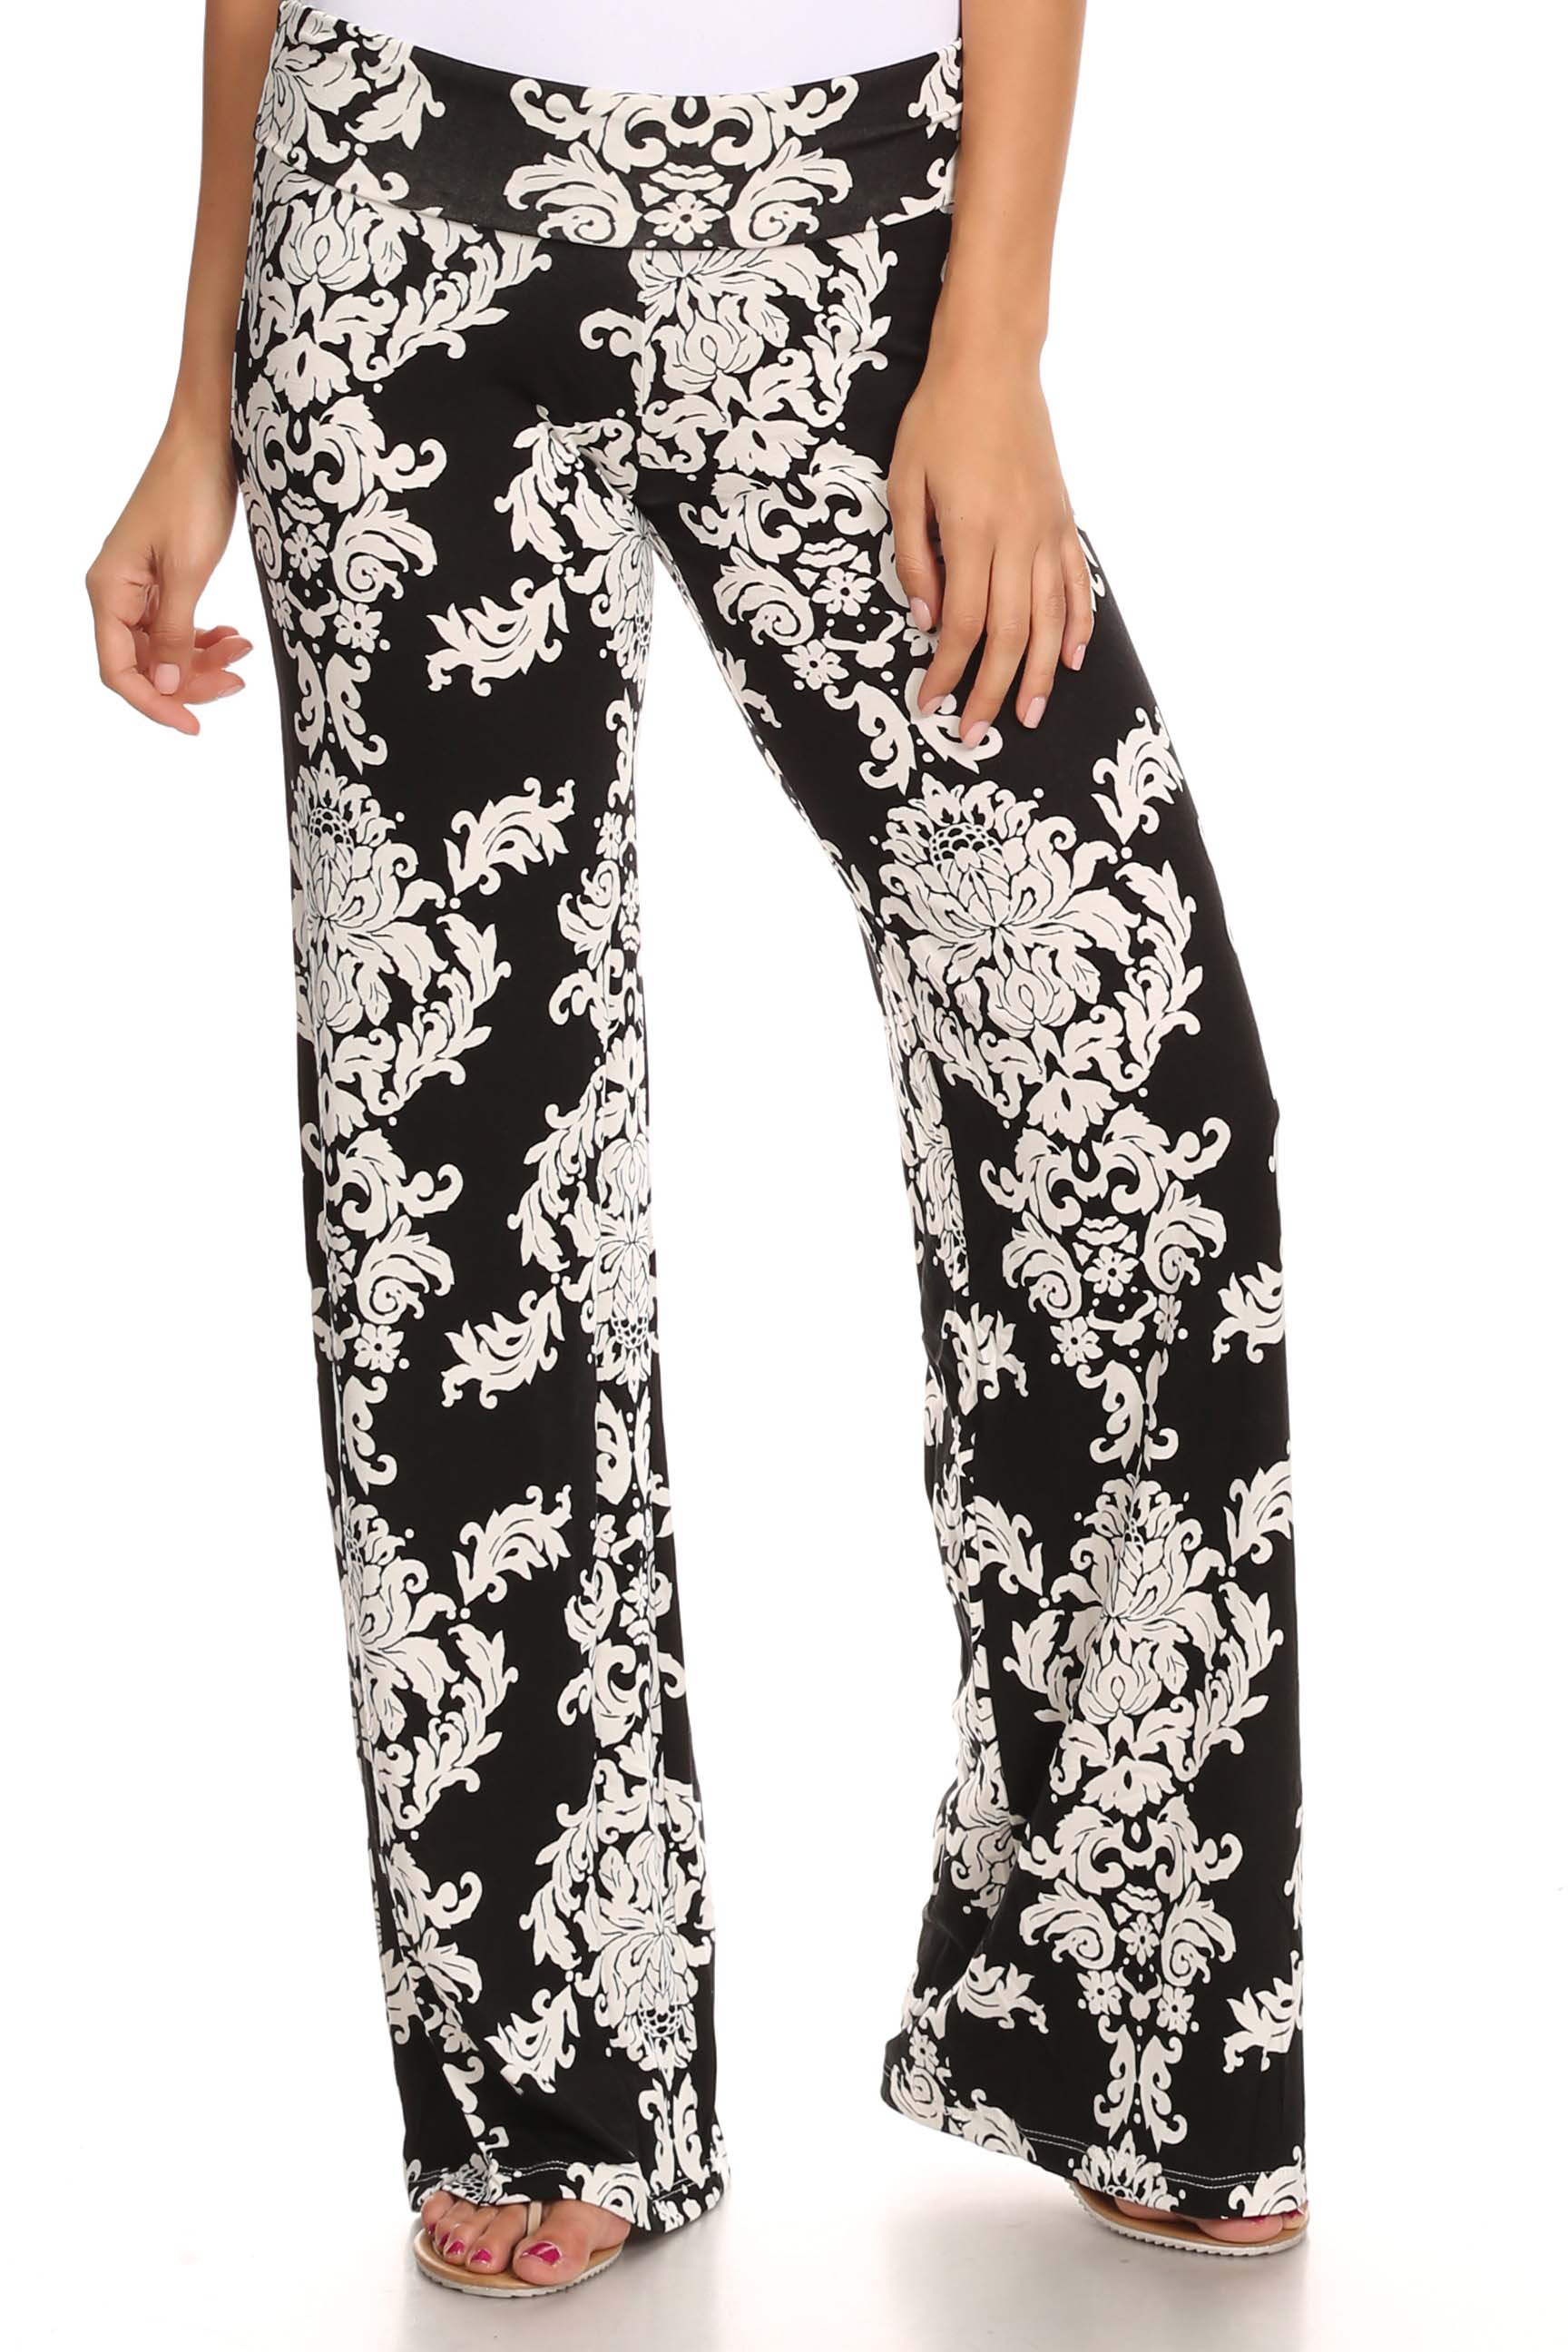 Innovative So I Turned To Another Source Wikipedia While Wikipedia Explains Palazzo Pants As Long Womens Trousers Cut With A Loose, Extremely Wide Leg That Flares Out From The Waist The Article On Culottes